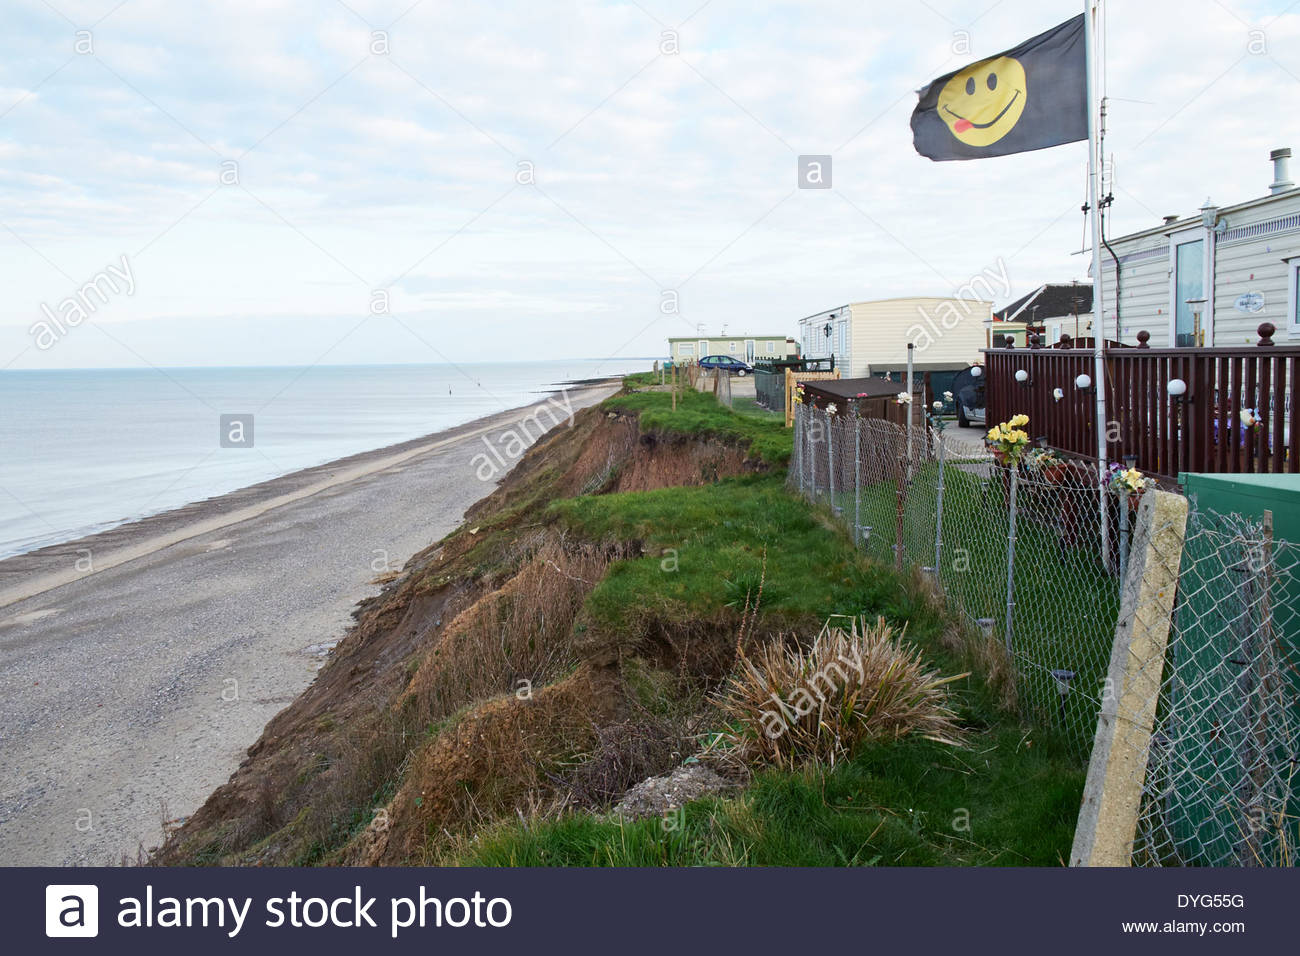 Mobile Homes on camp site under threat  from erosion, landslip. Clay cliffs at Hornsea, Holderness Coast - erosion by sea action - Stock Image